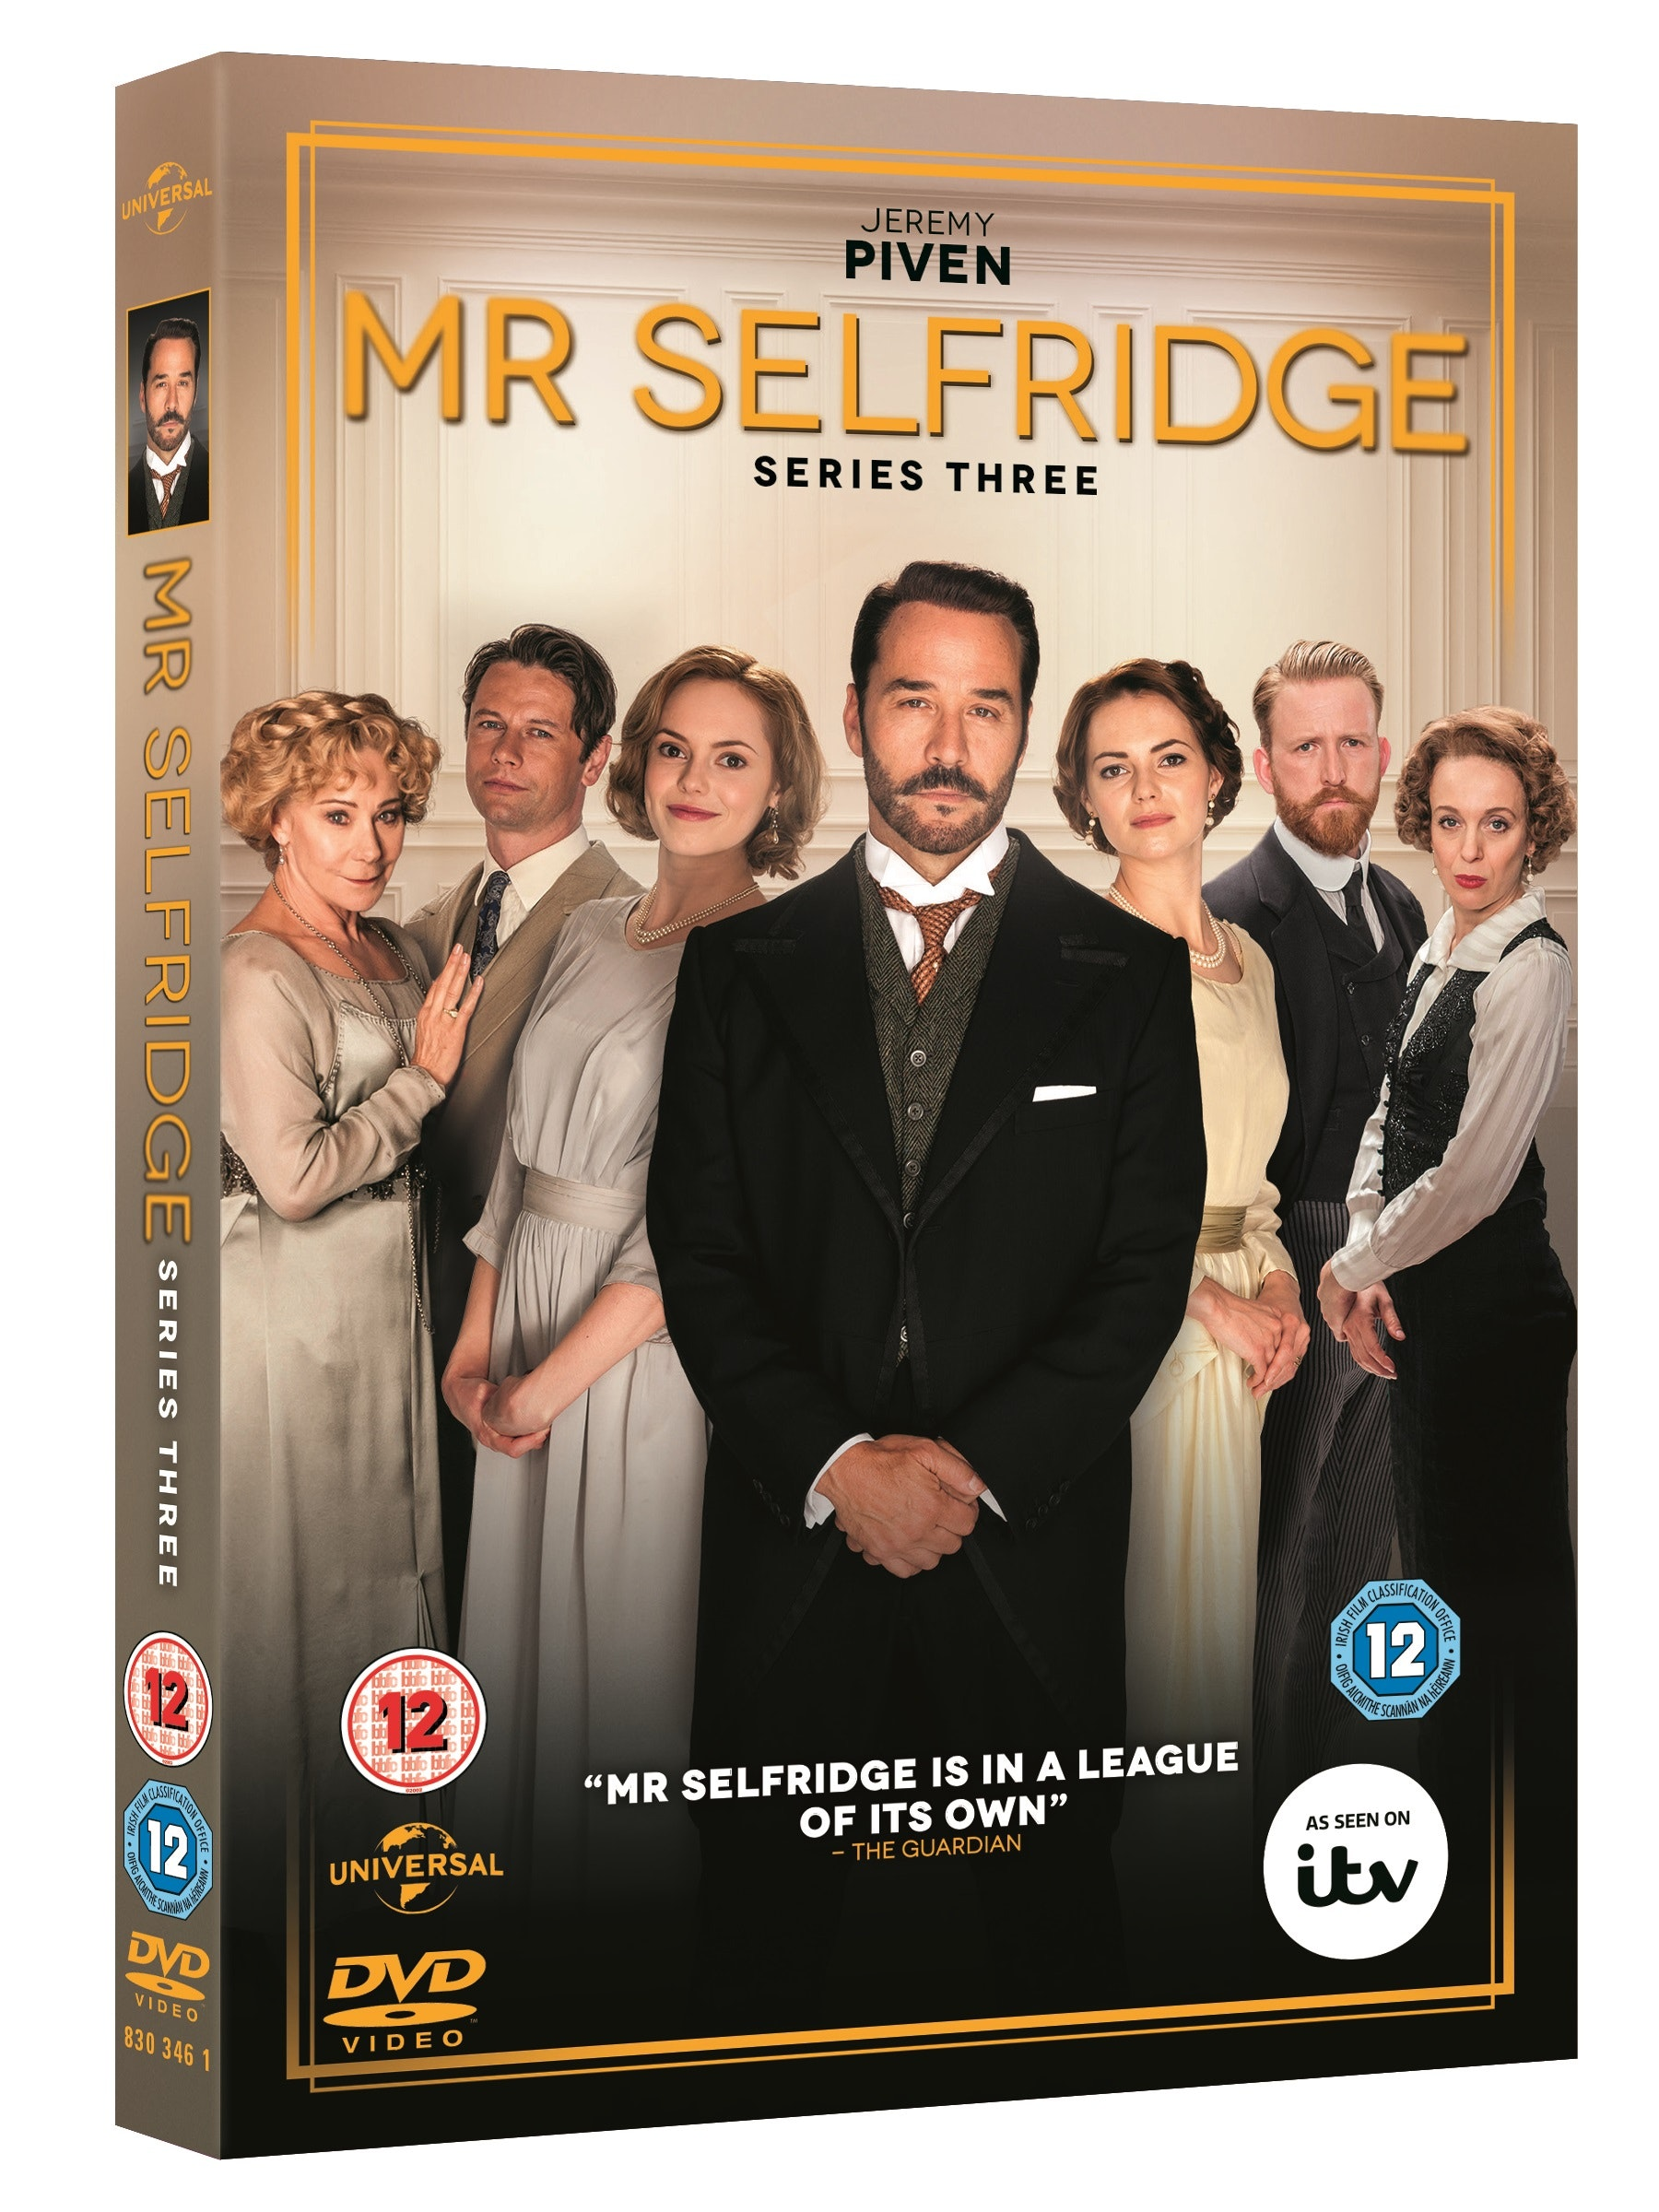 Mr selfridge series 3 3d packshot